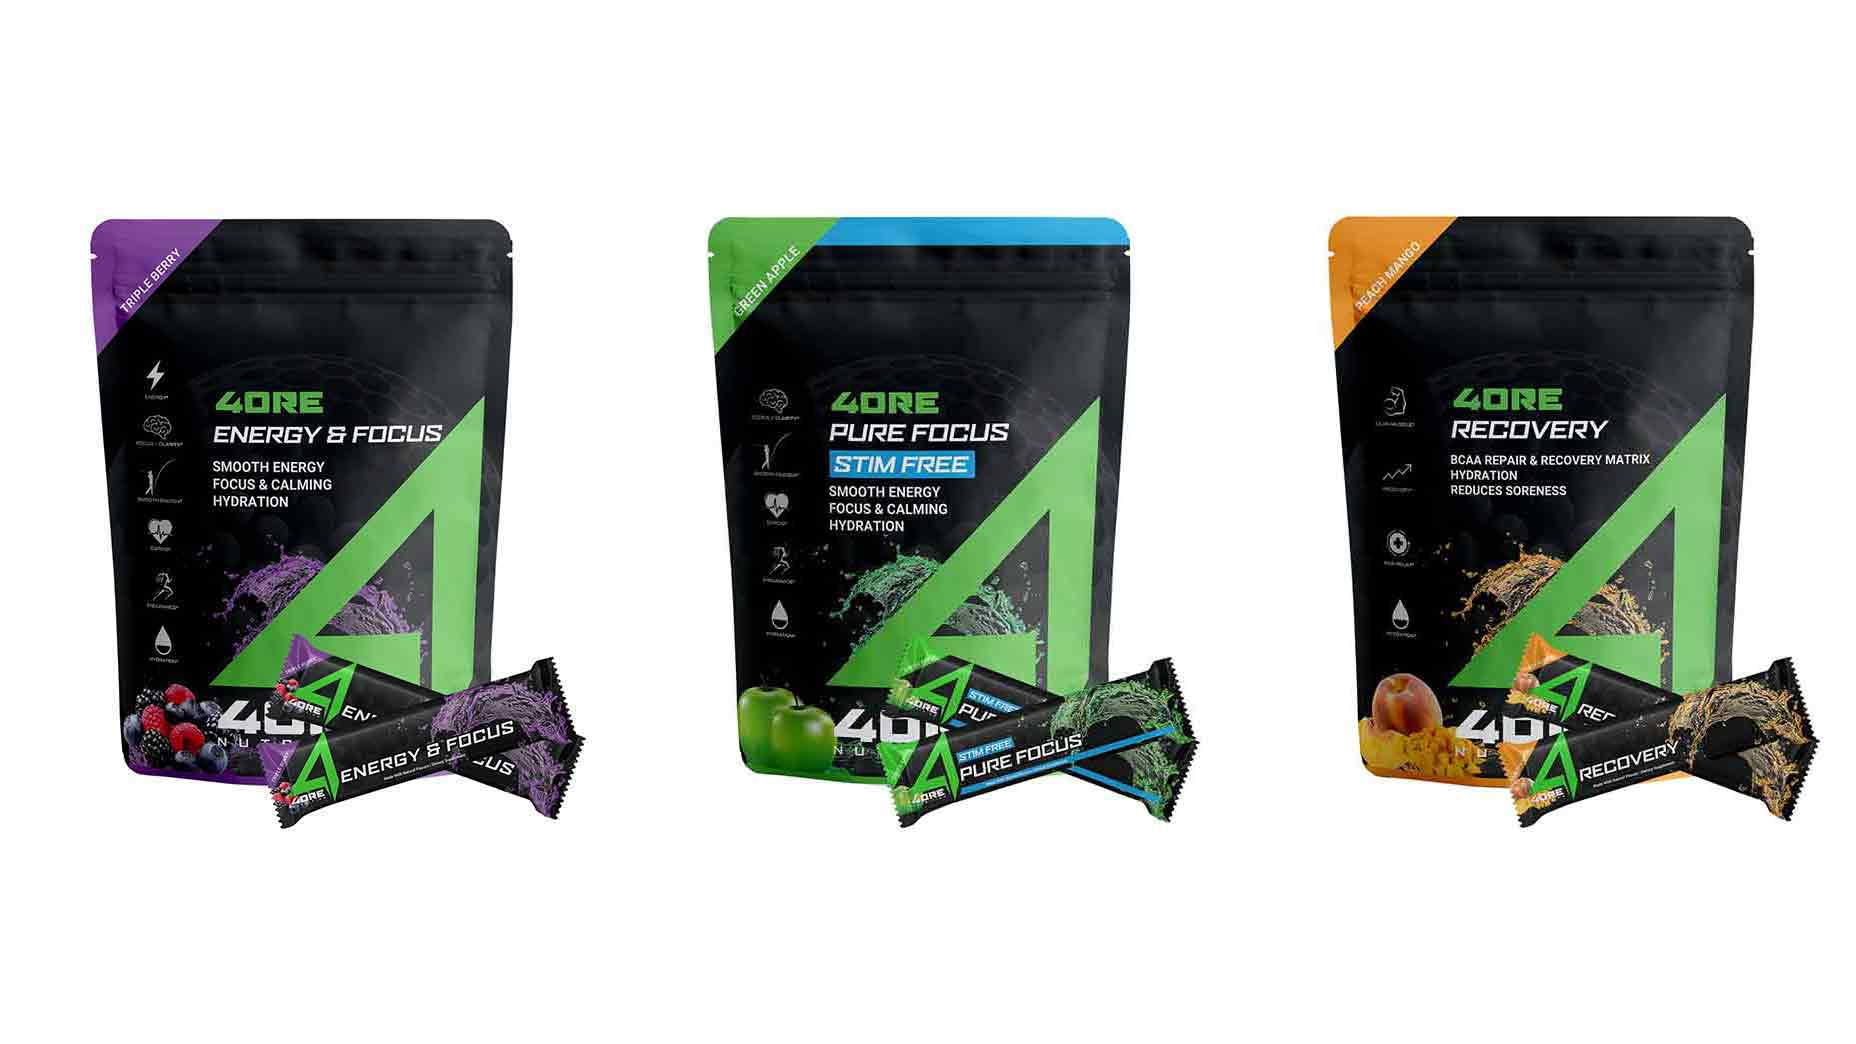 Three packages of 4ore Nutrition's supplements in a row.